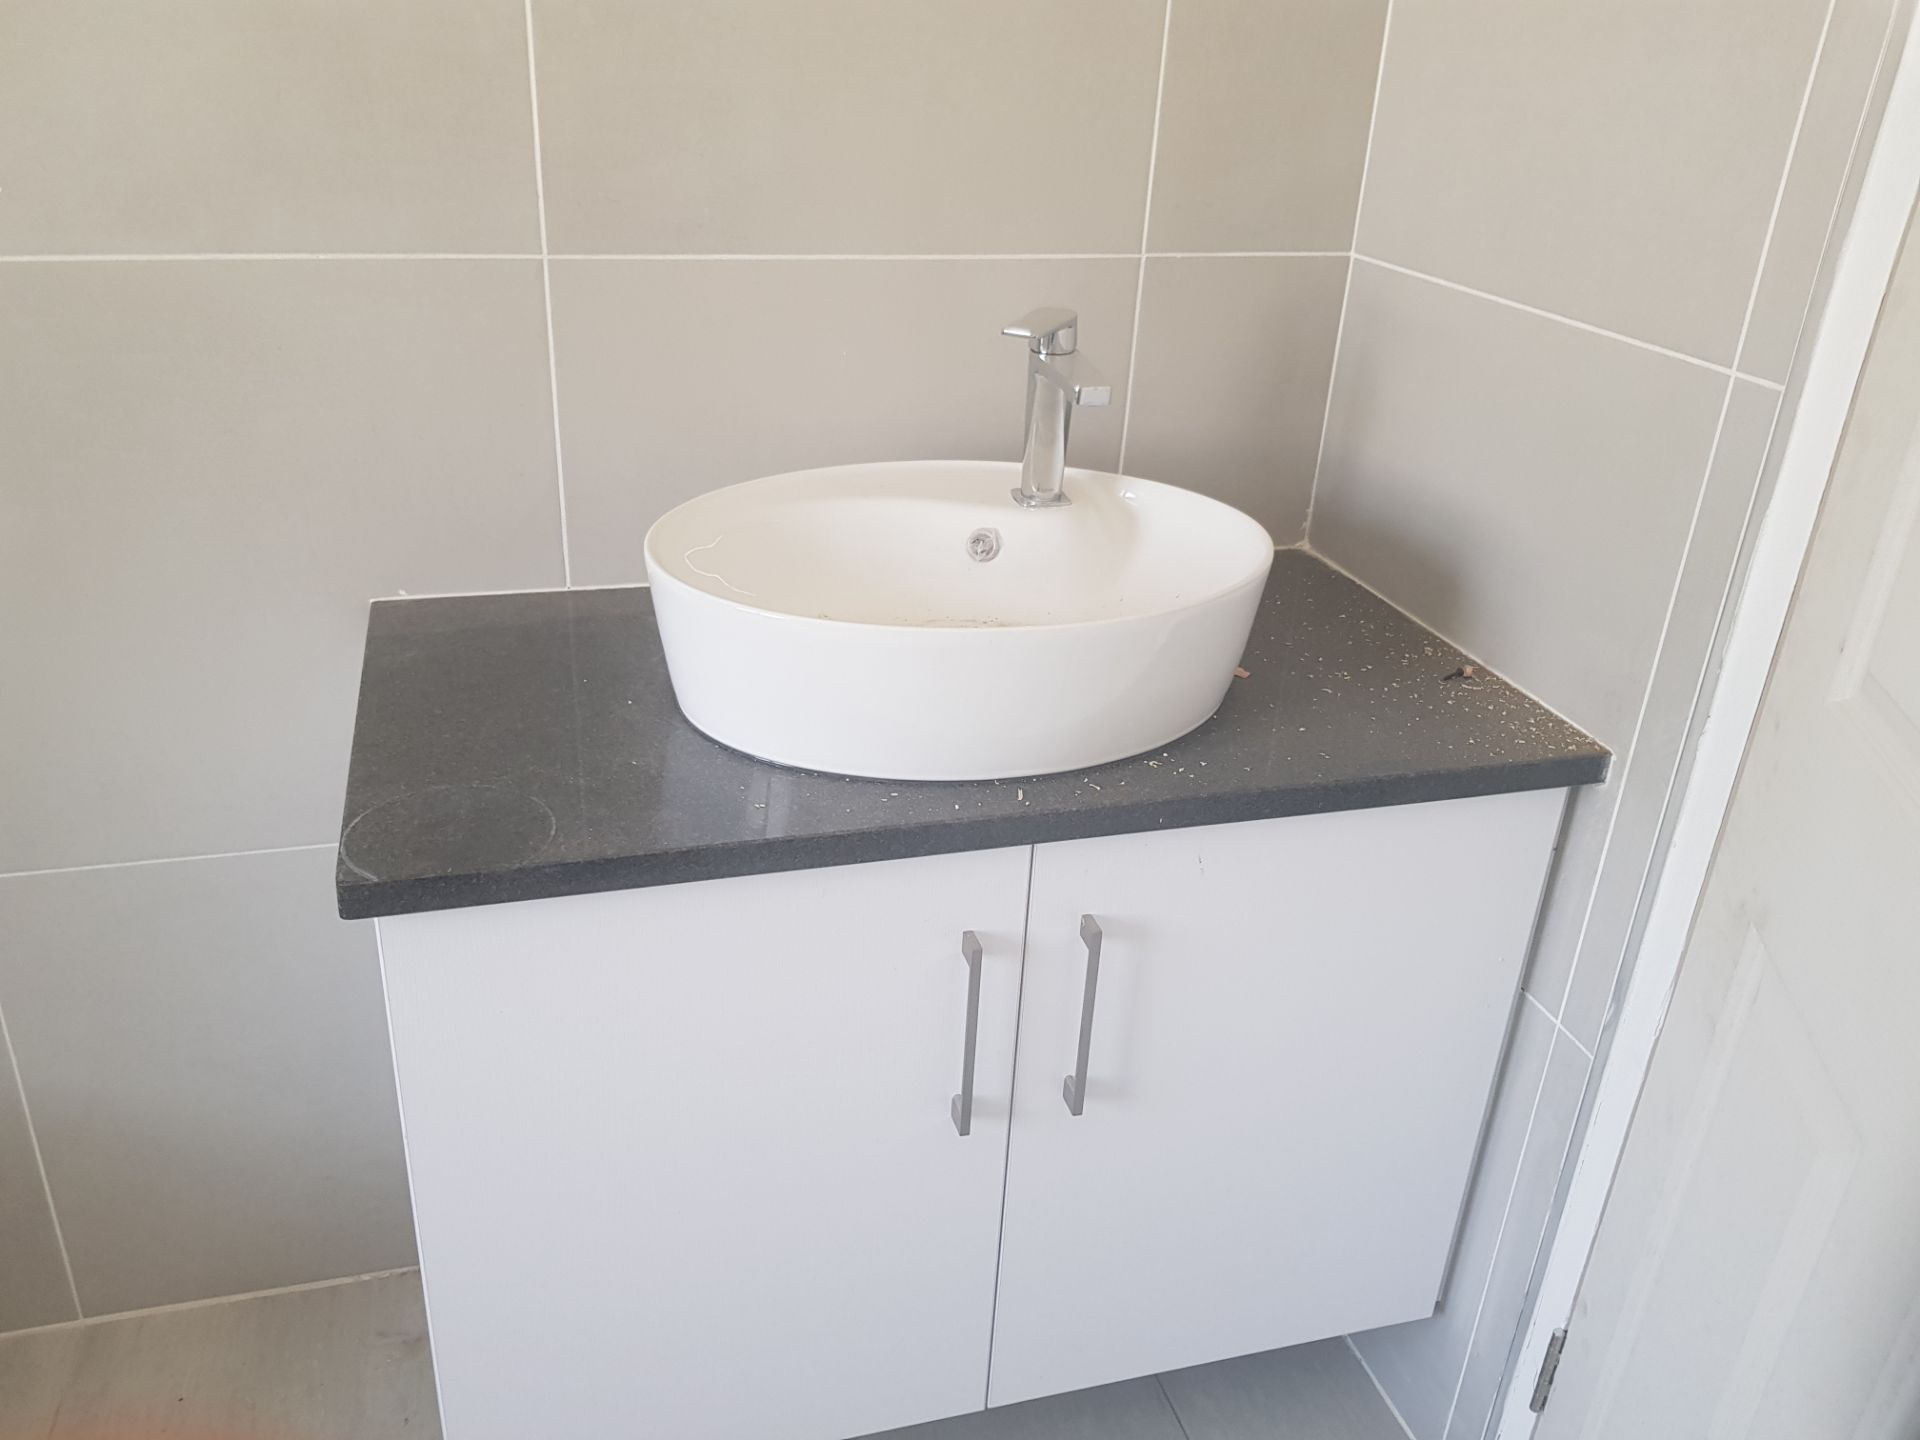 House in Lifestyle Estate - 20190920_130320.jpg